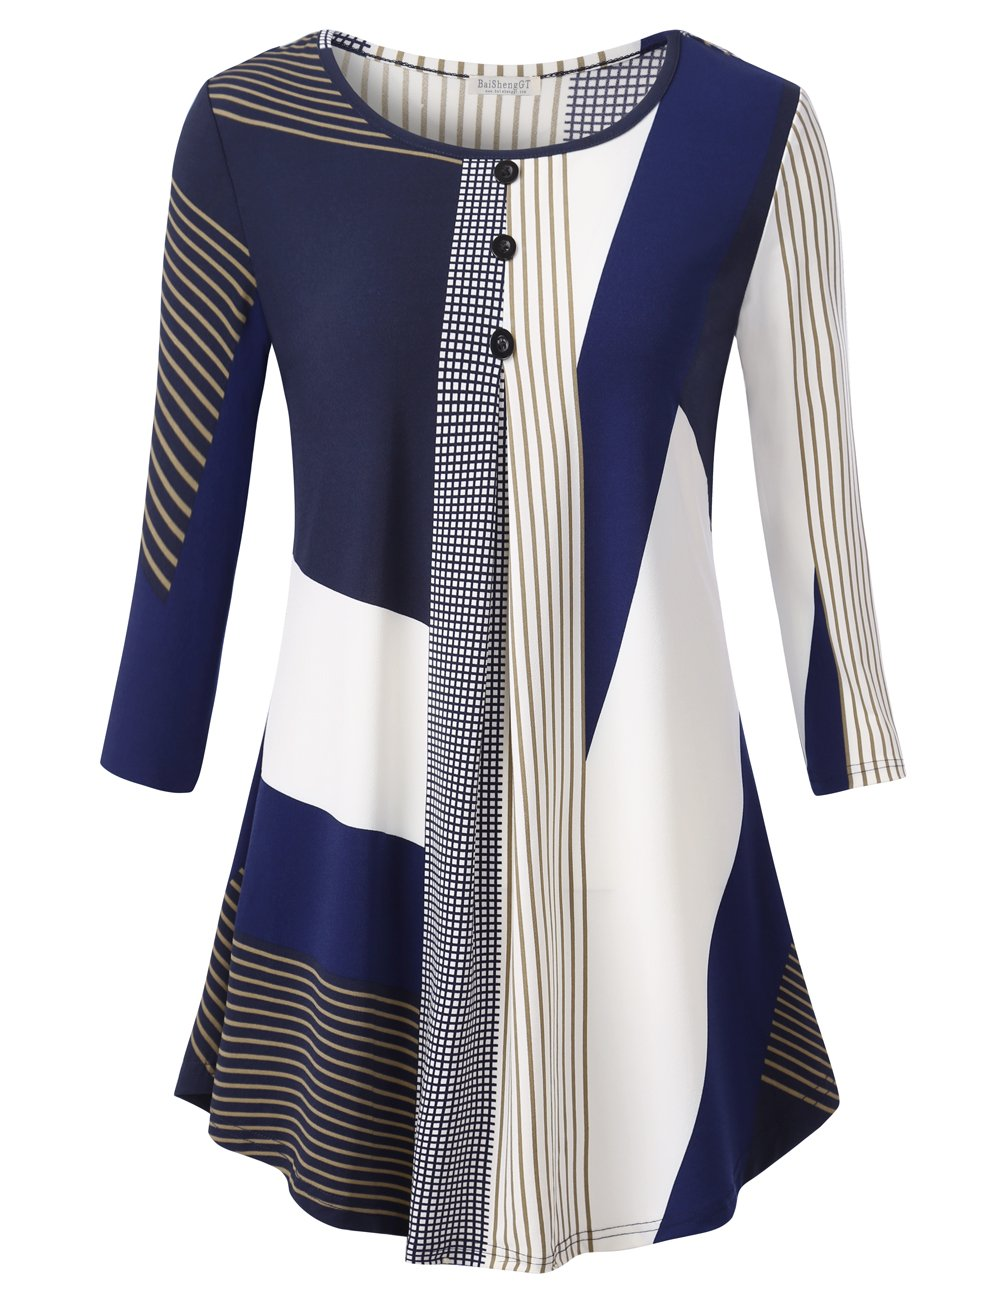 BAISHENGGT Women's 3/4 Sleeve Buttons Pleated Front Tunic Top Modern Block XL by BAISHENGGT